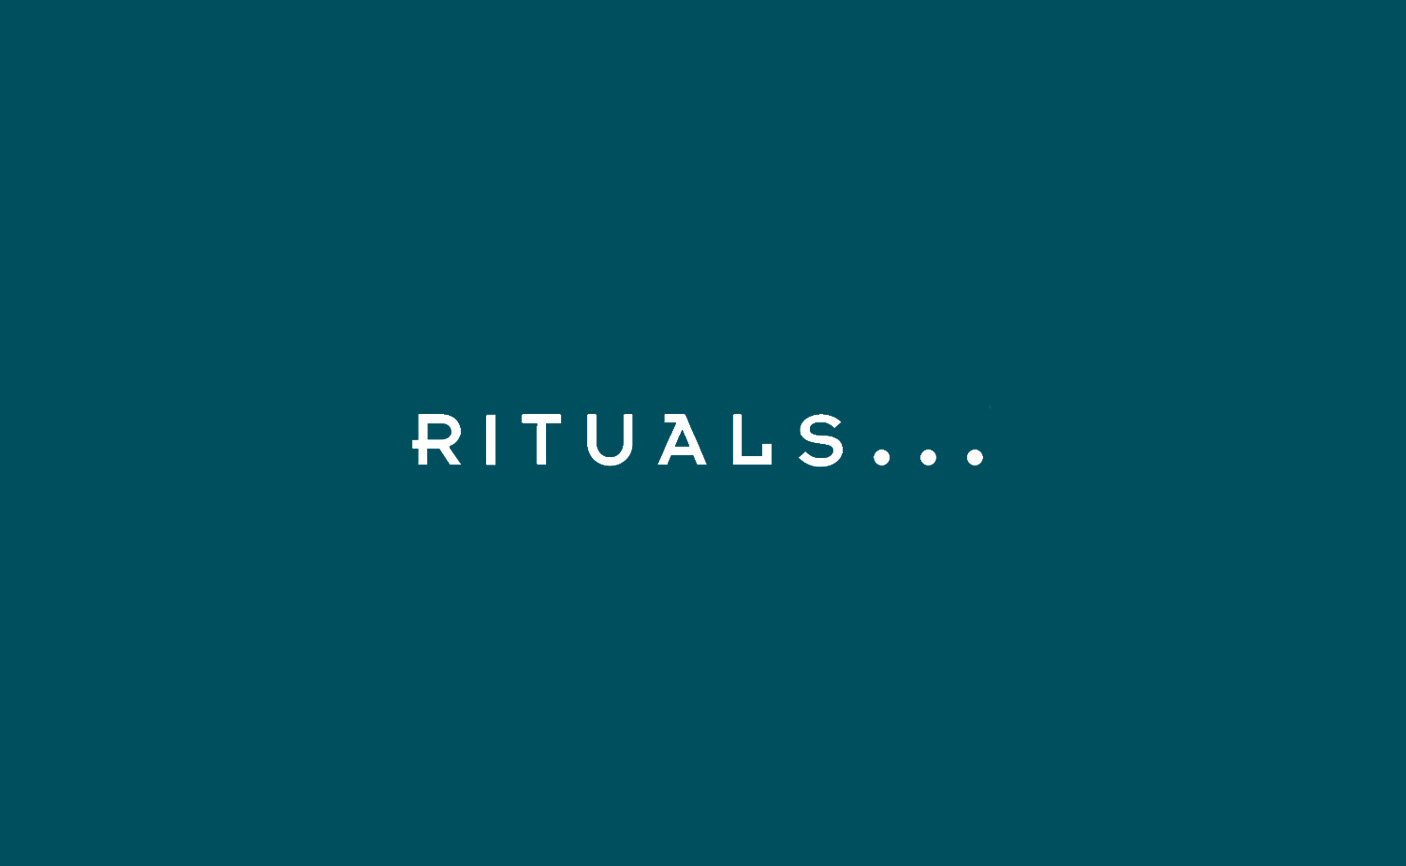 Rituals - customer testimonial and customer reference